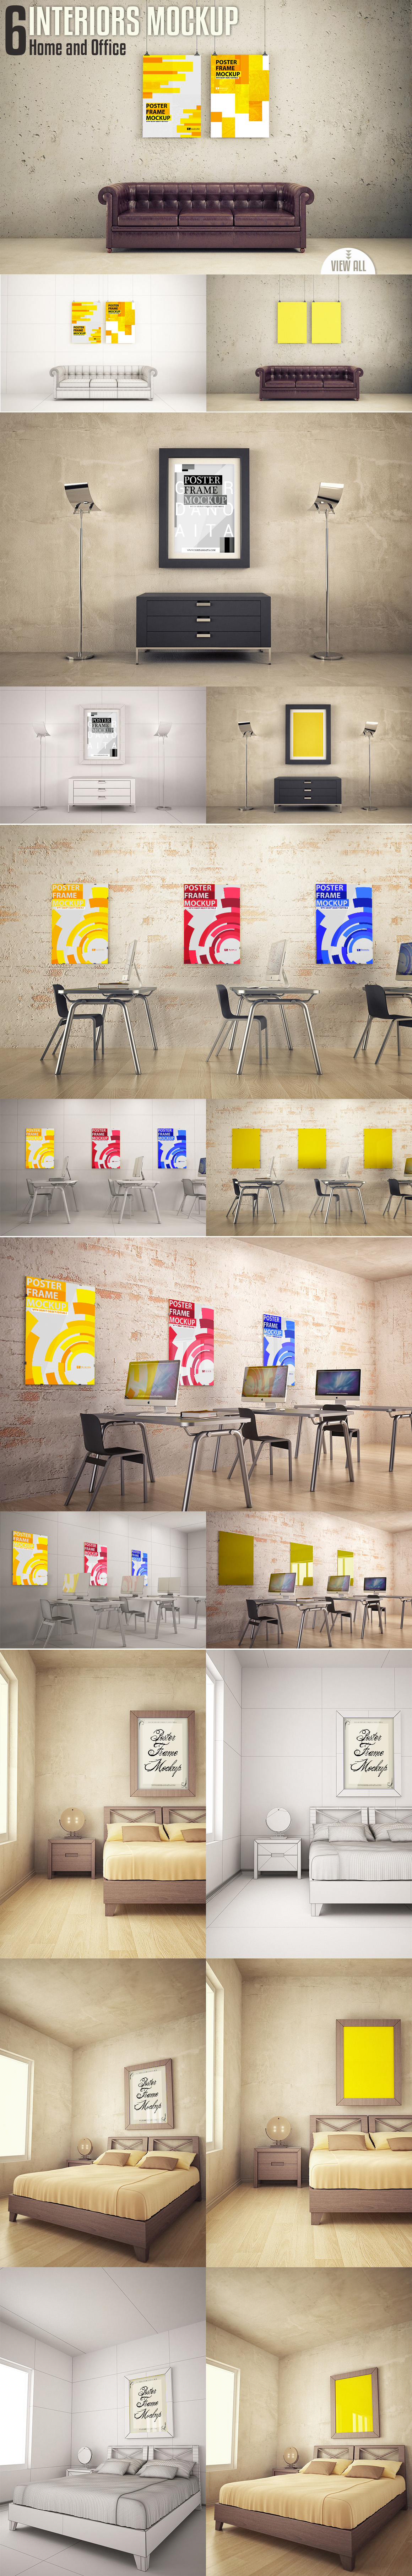 Interiors Mock-up Vol. 3 example image 9